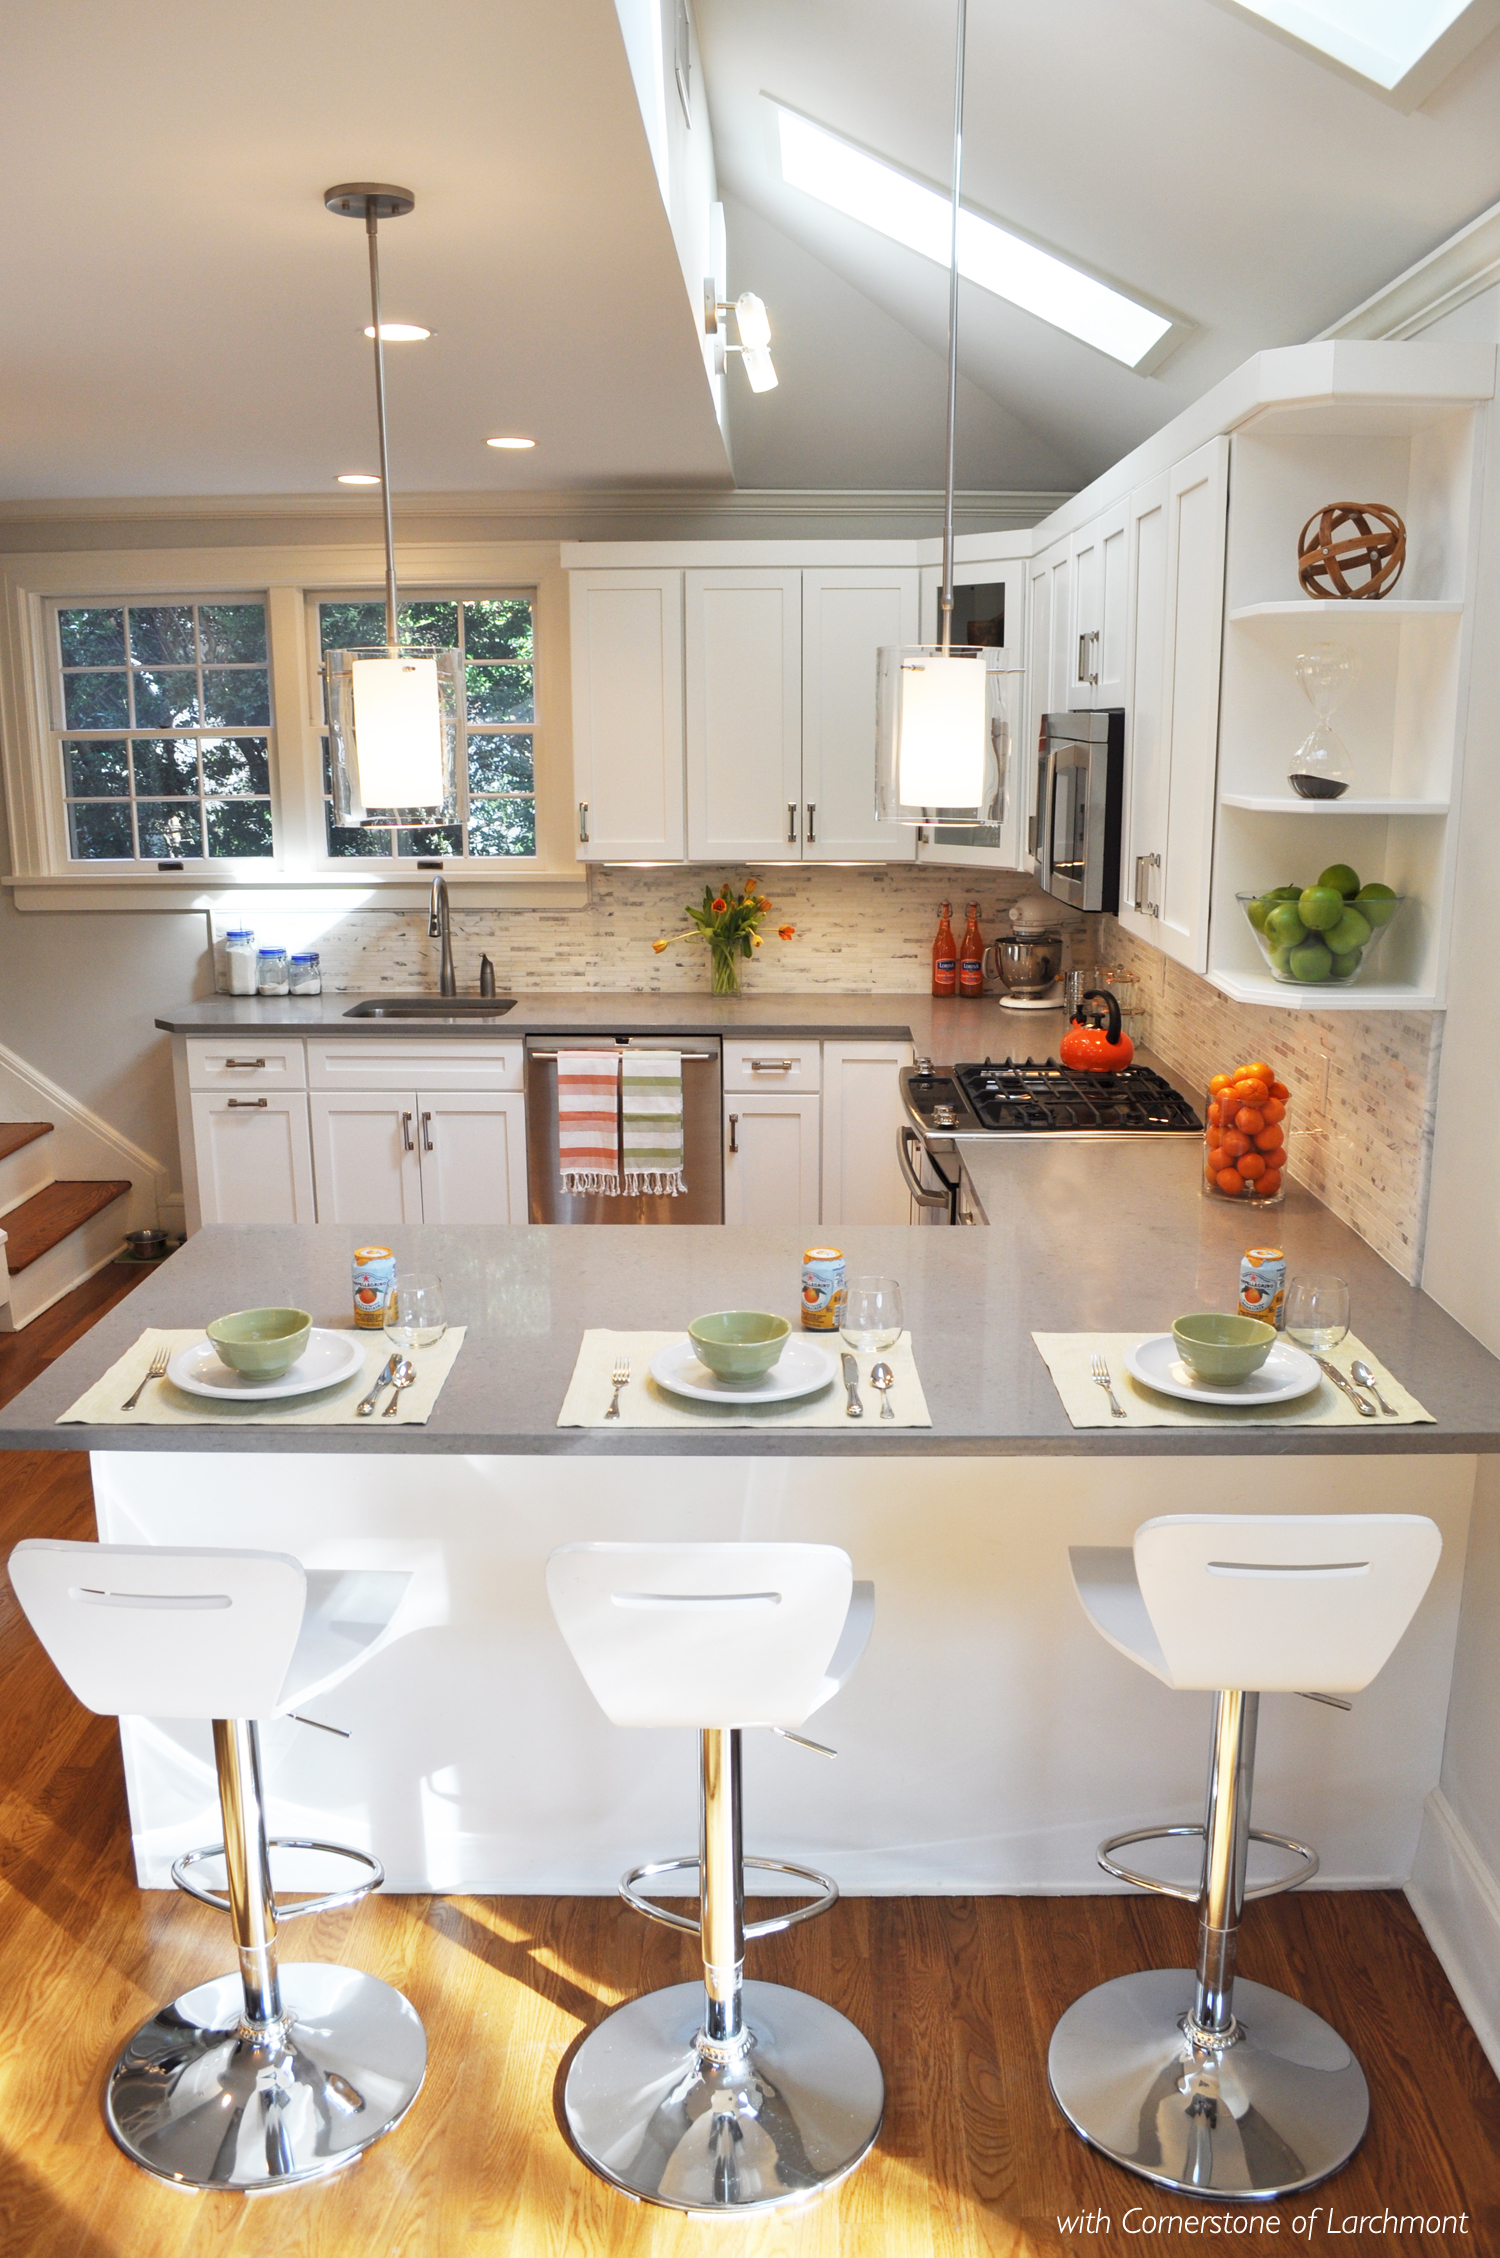 KAM DESIGN LLC_Kitchen Remodel_White Cabinets_Peninsula_Glass Pendants_Caesarstone.jpg